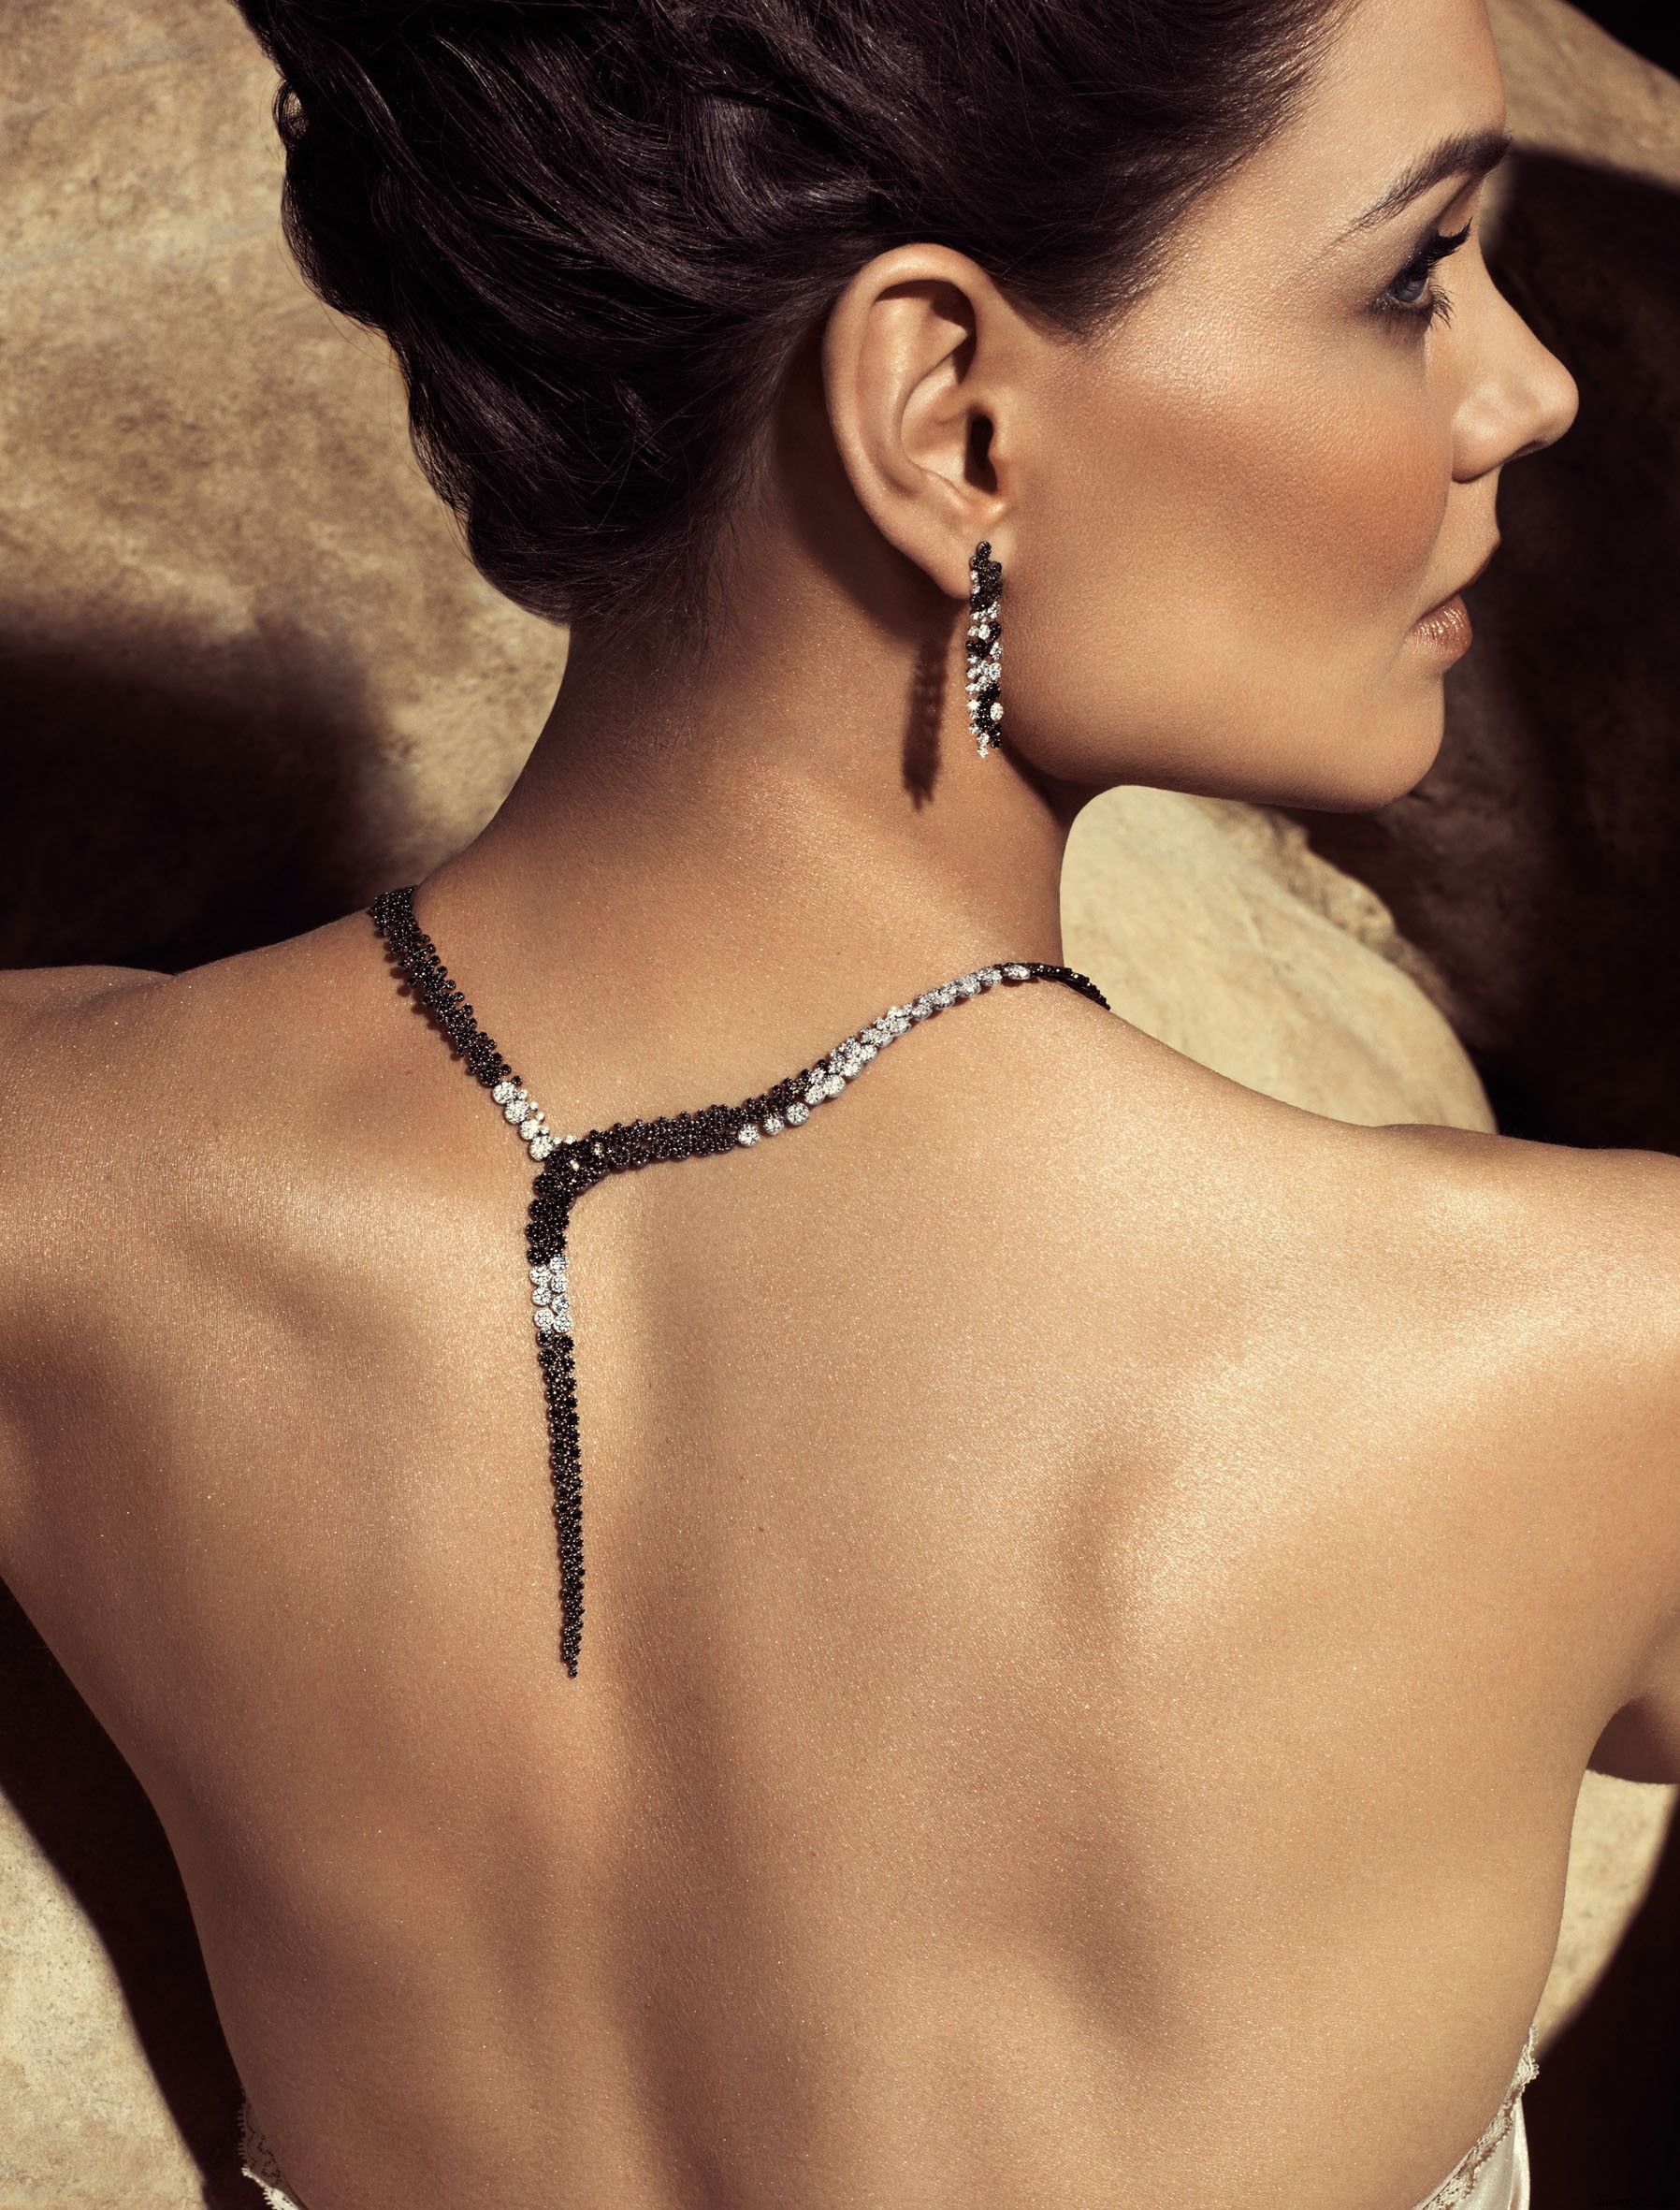 Katie Holmes Models Designer Jewelry for H. Stern